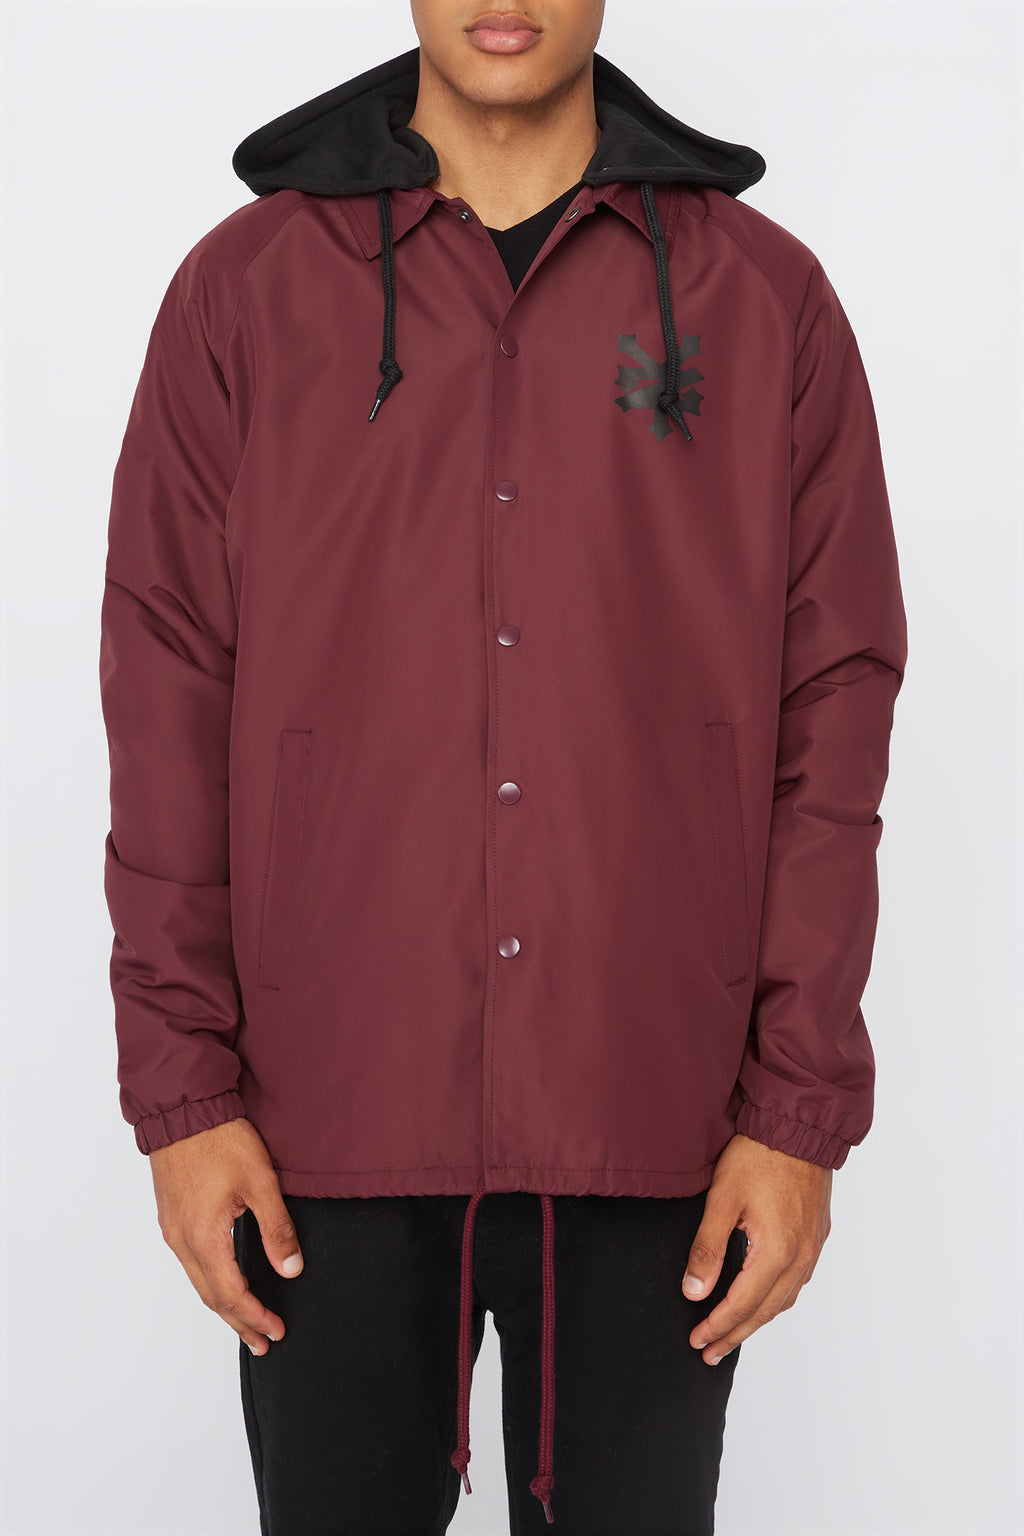 Zoo York Mens Contrast Hood Coach Jacket